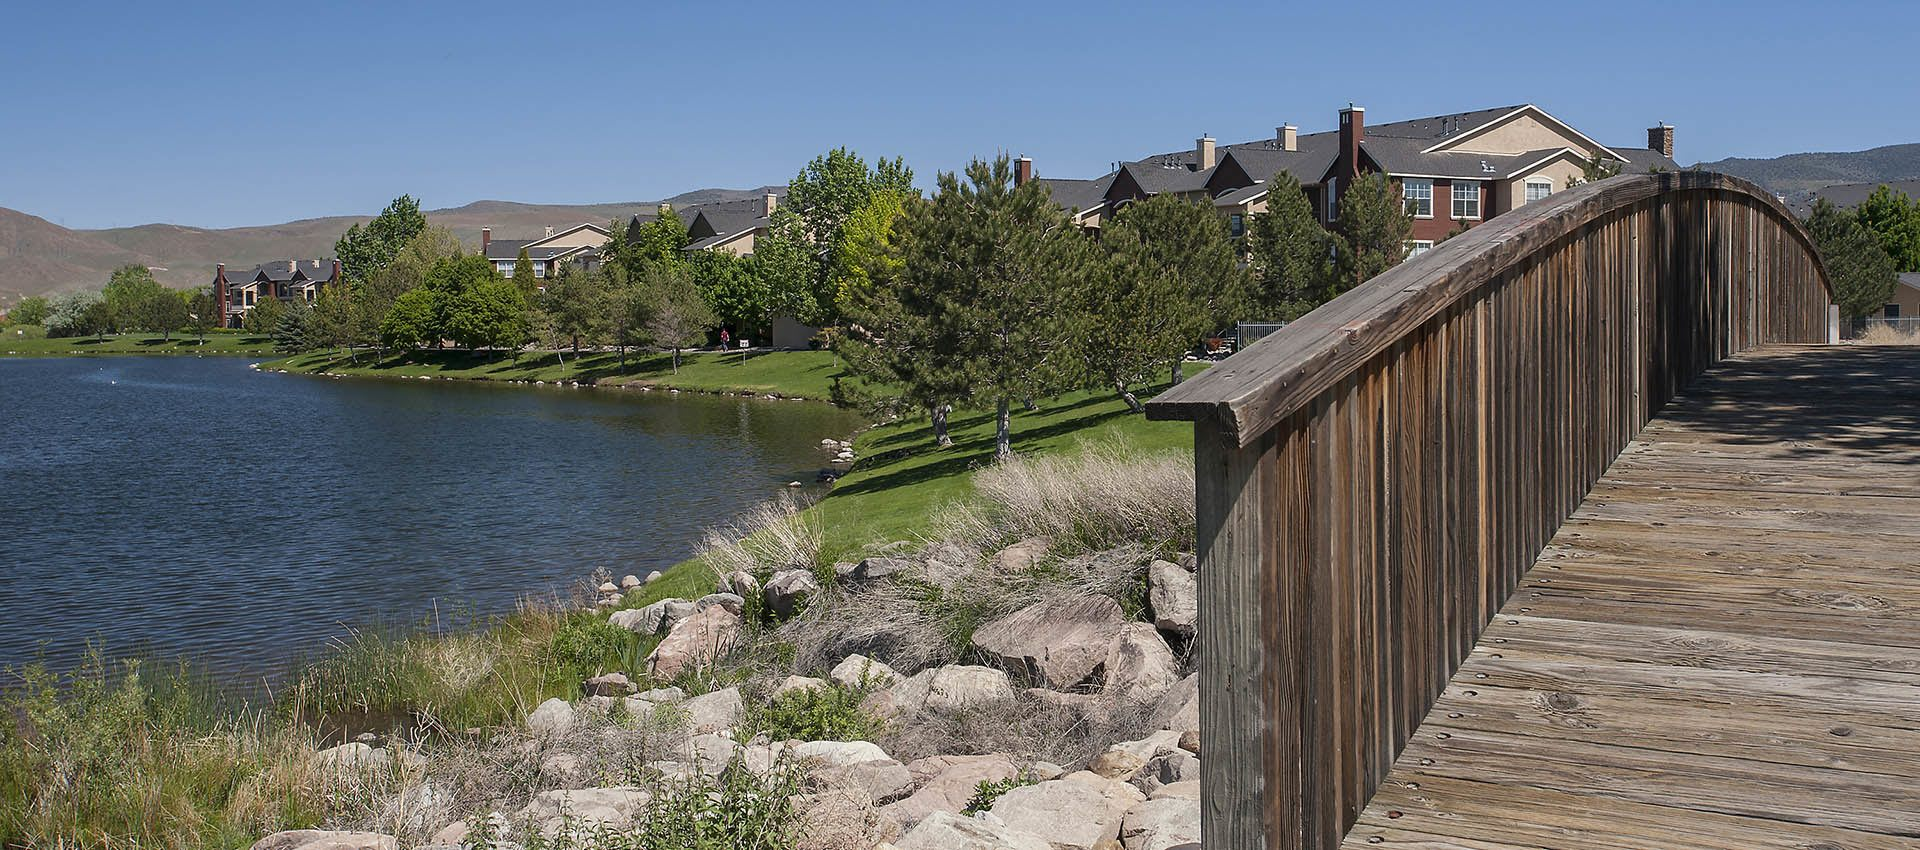 Private Lake with Bass Fishing at The Vintage at South Meadows Condominium Rentals in Reno